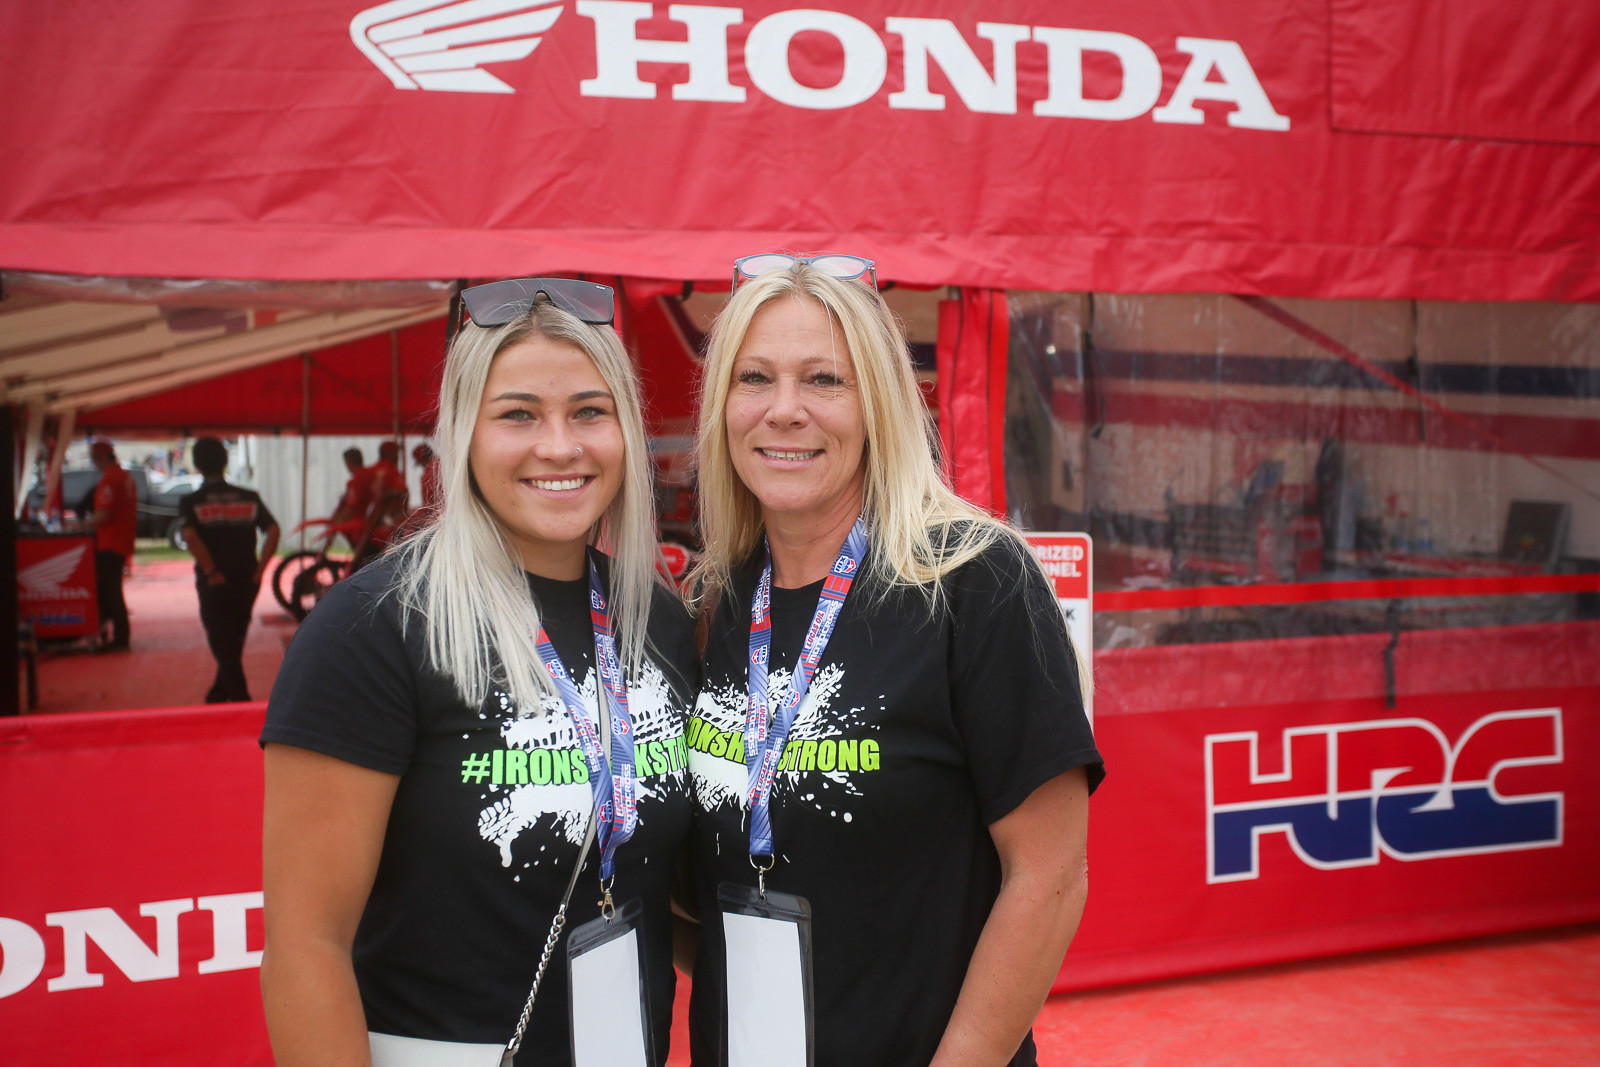 The recent passing of Scott Sheak was a tough one. We spotted his daughter, Brooke; and widow, Amy, visiting with some of the teams in the pits.